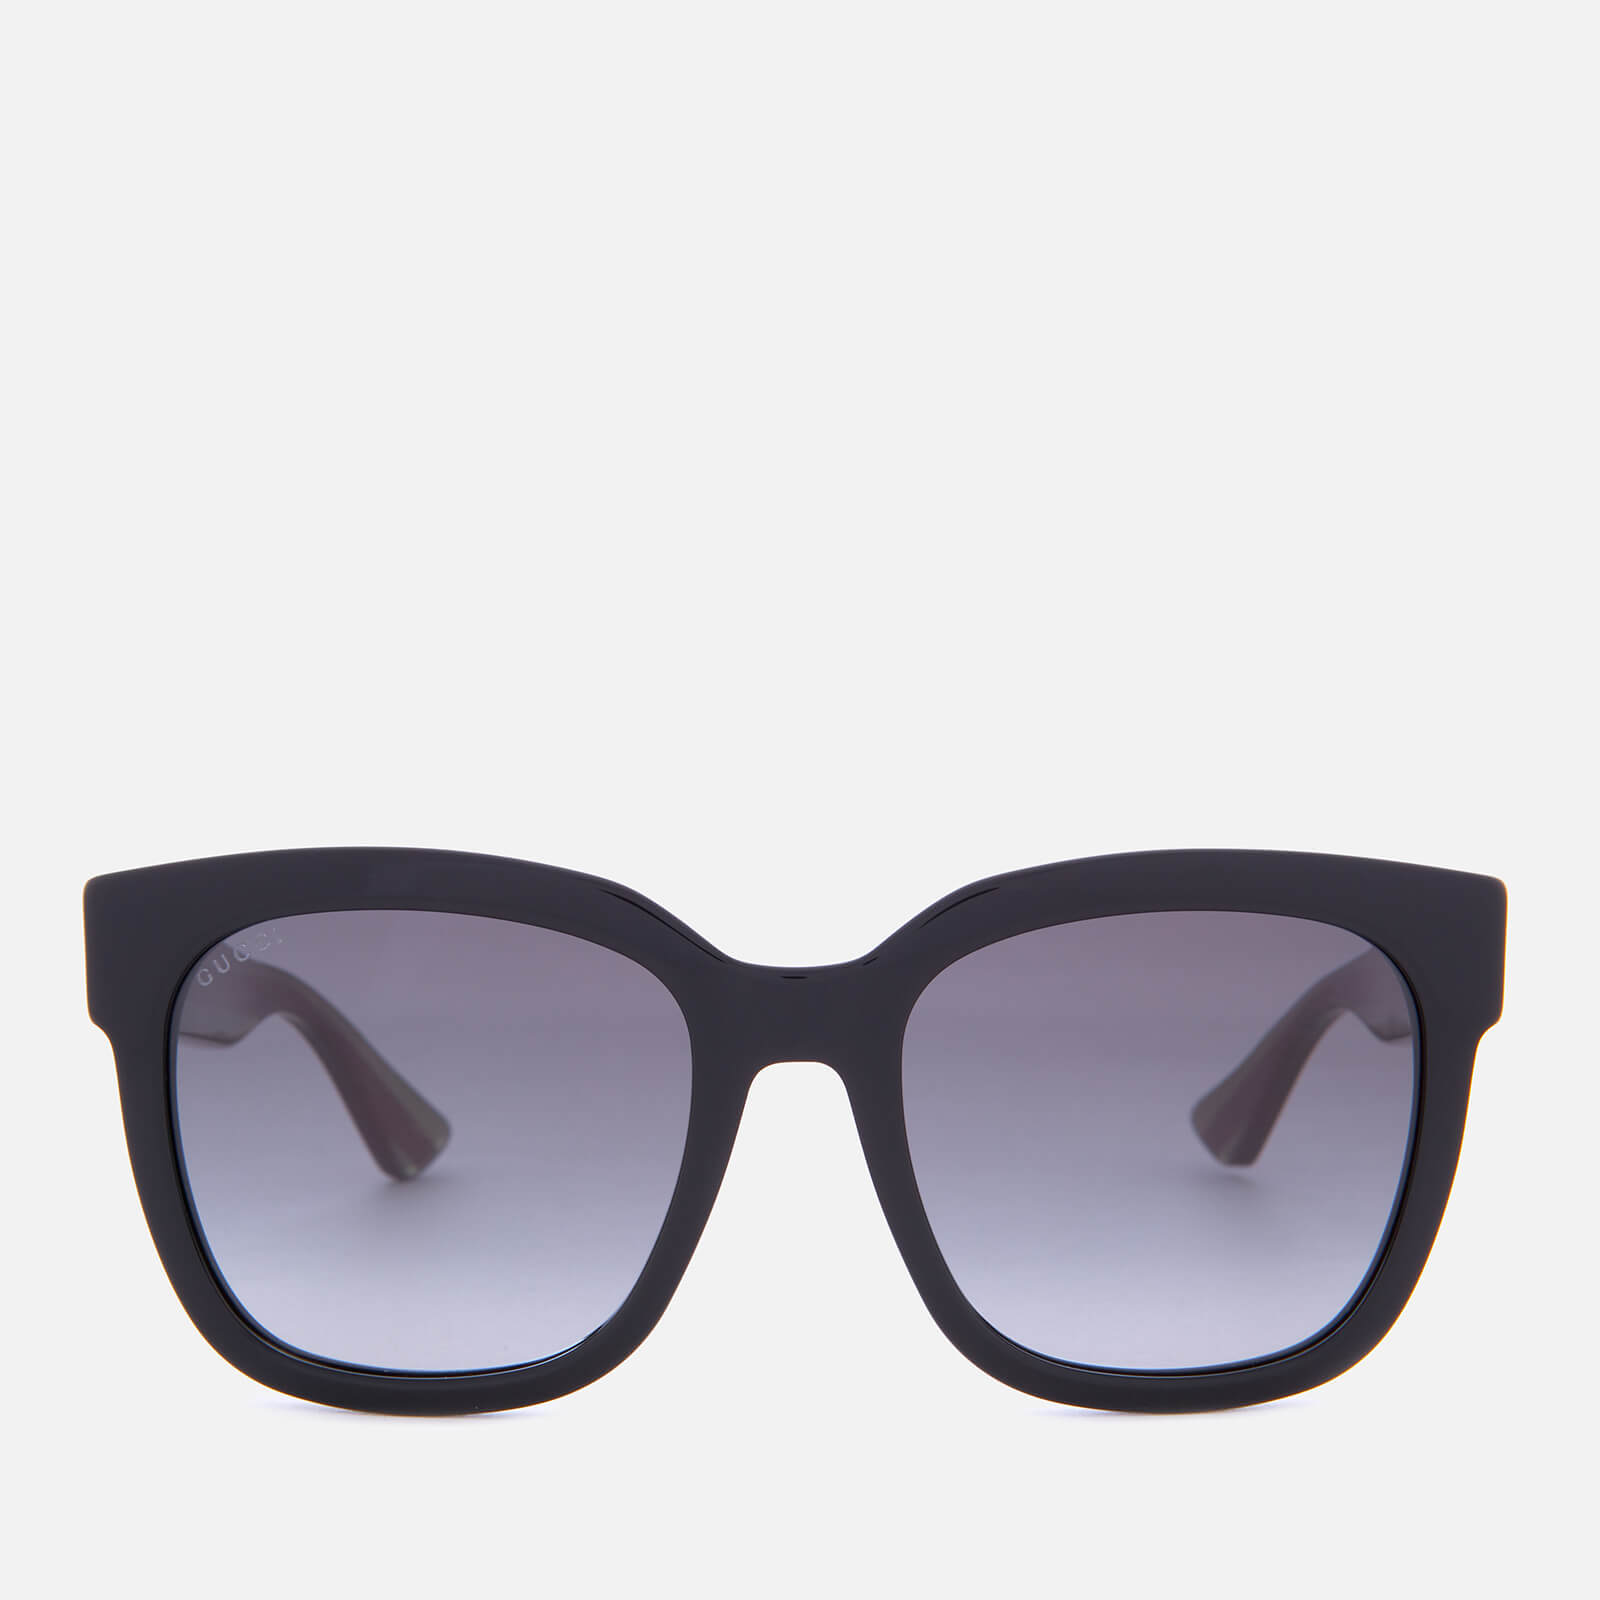 8d701924043 Gucci Women s Acetate Square Frame Sunglasses - Black Green - Free UK  Delivery over £50